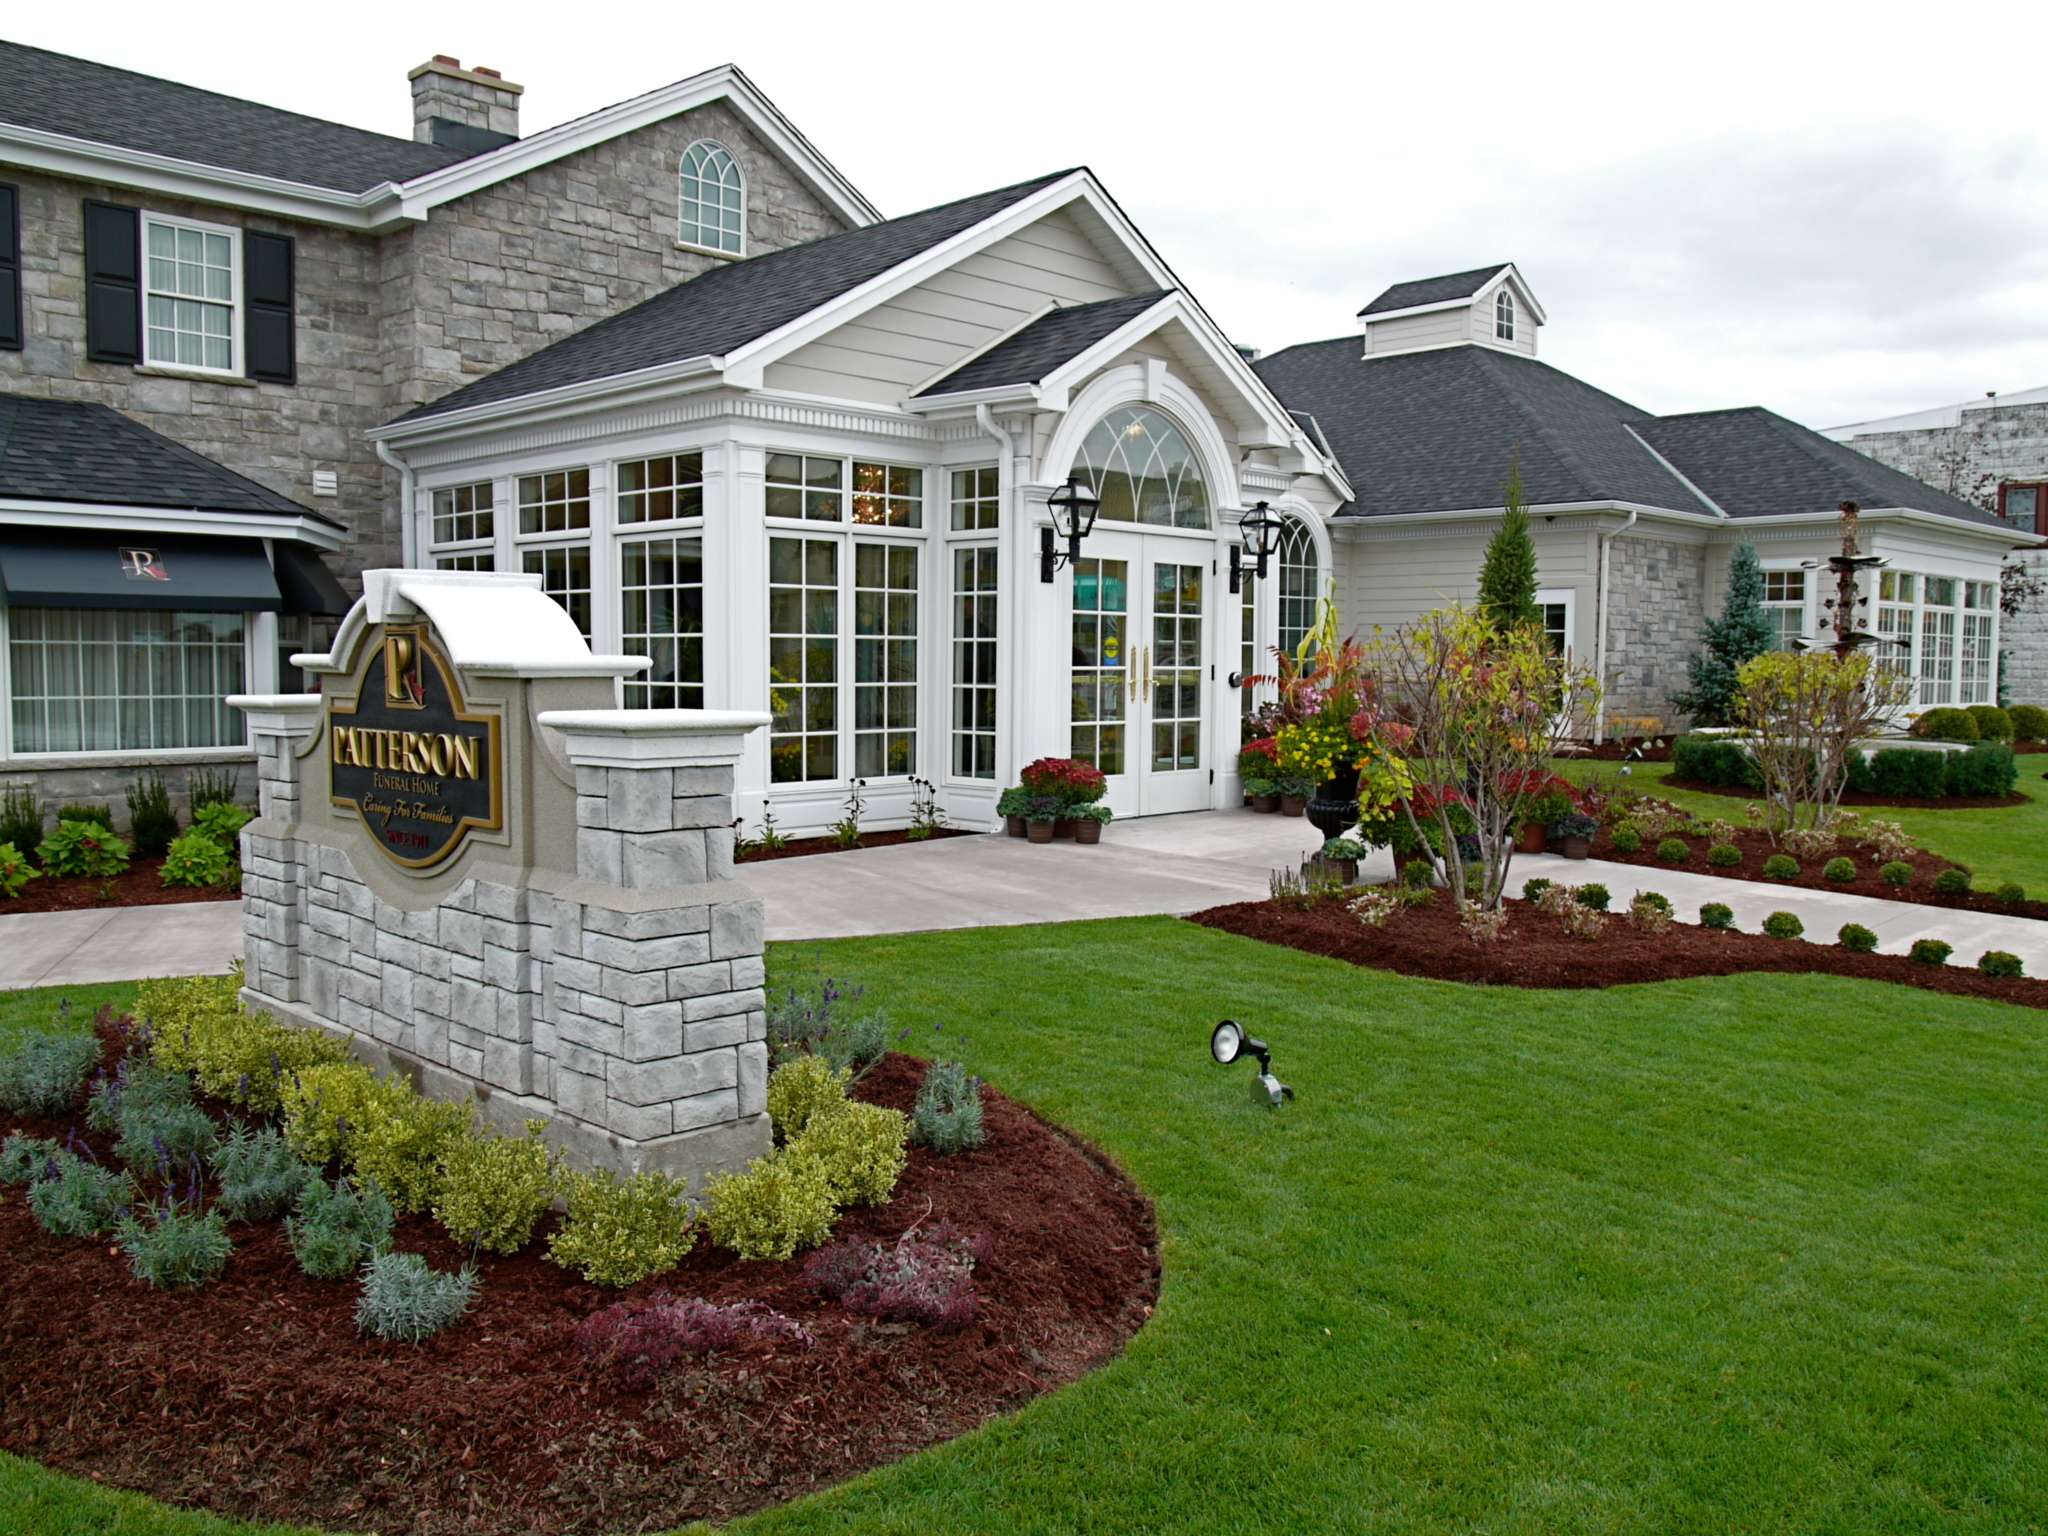 Patterson Funeral Home in Niagara Falls